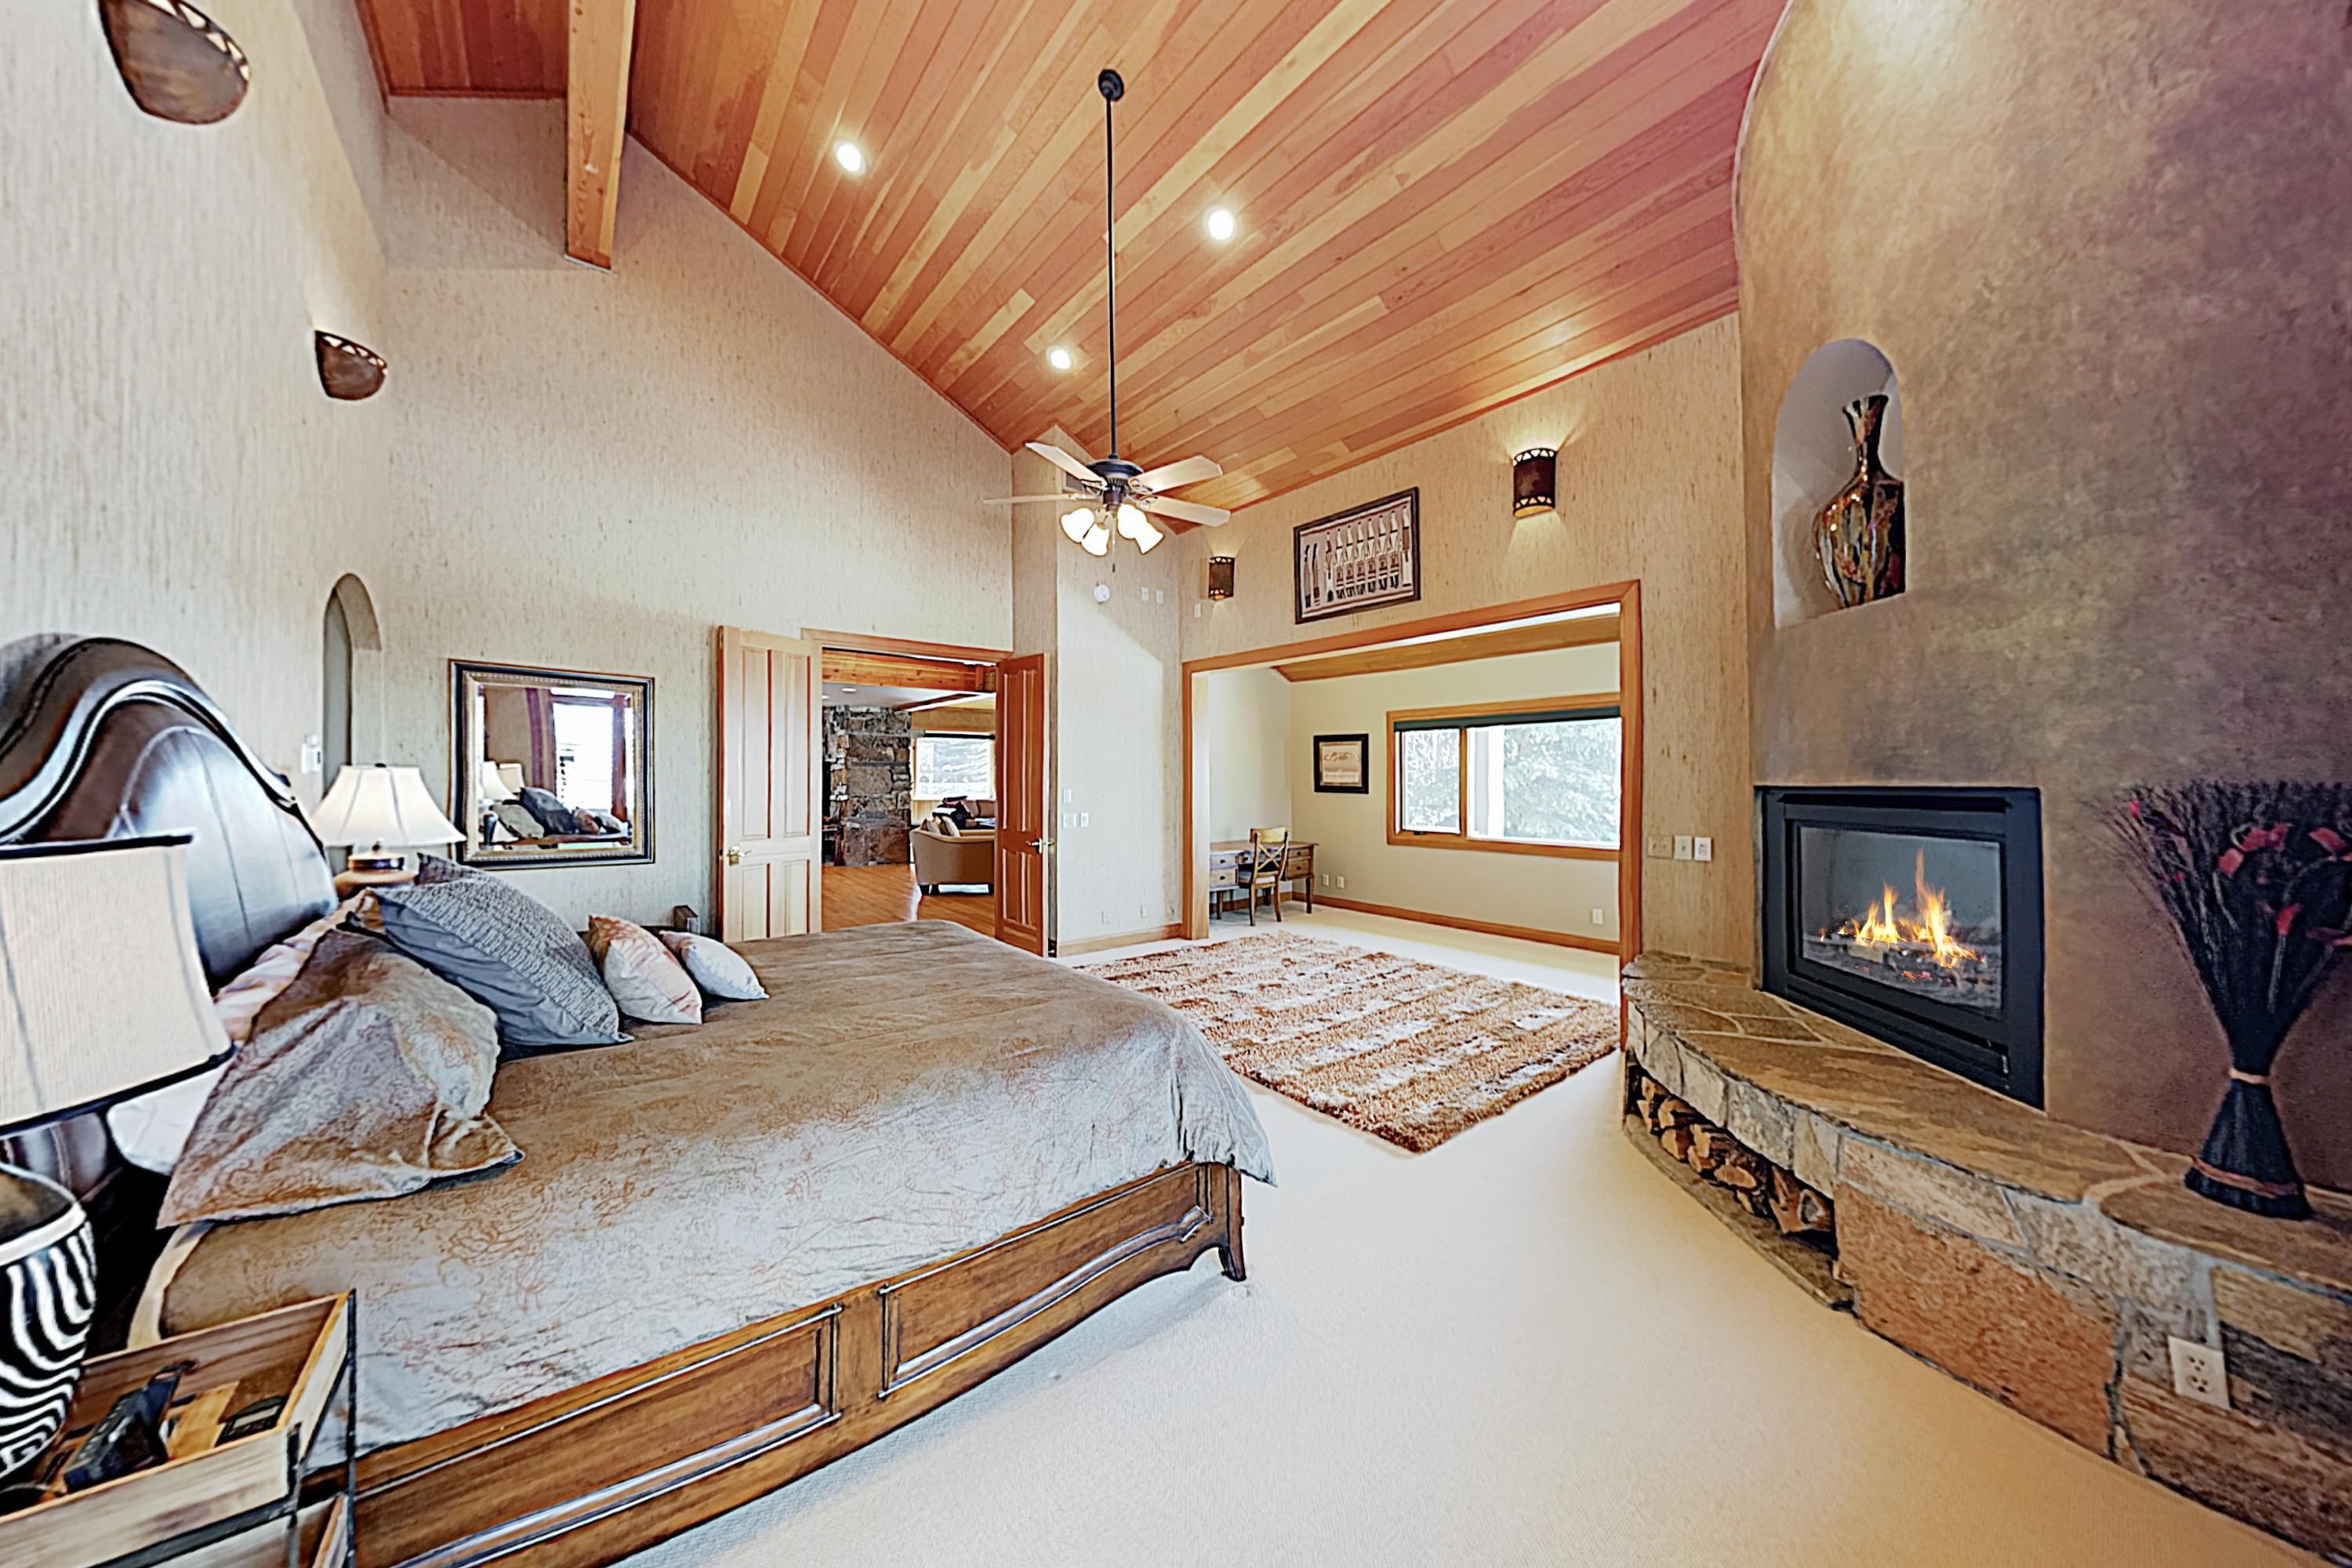 The stately master bedroom has a king bed and a gas fireplace.